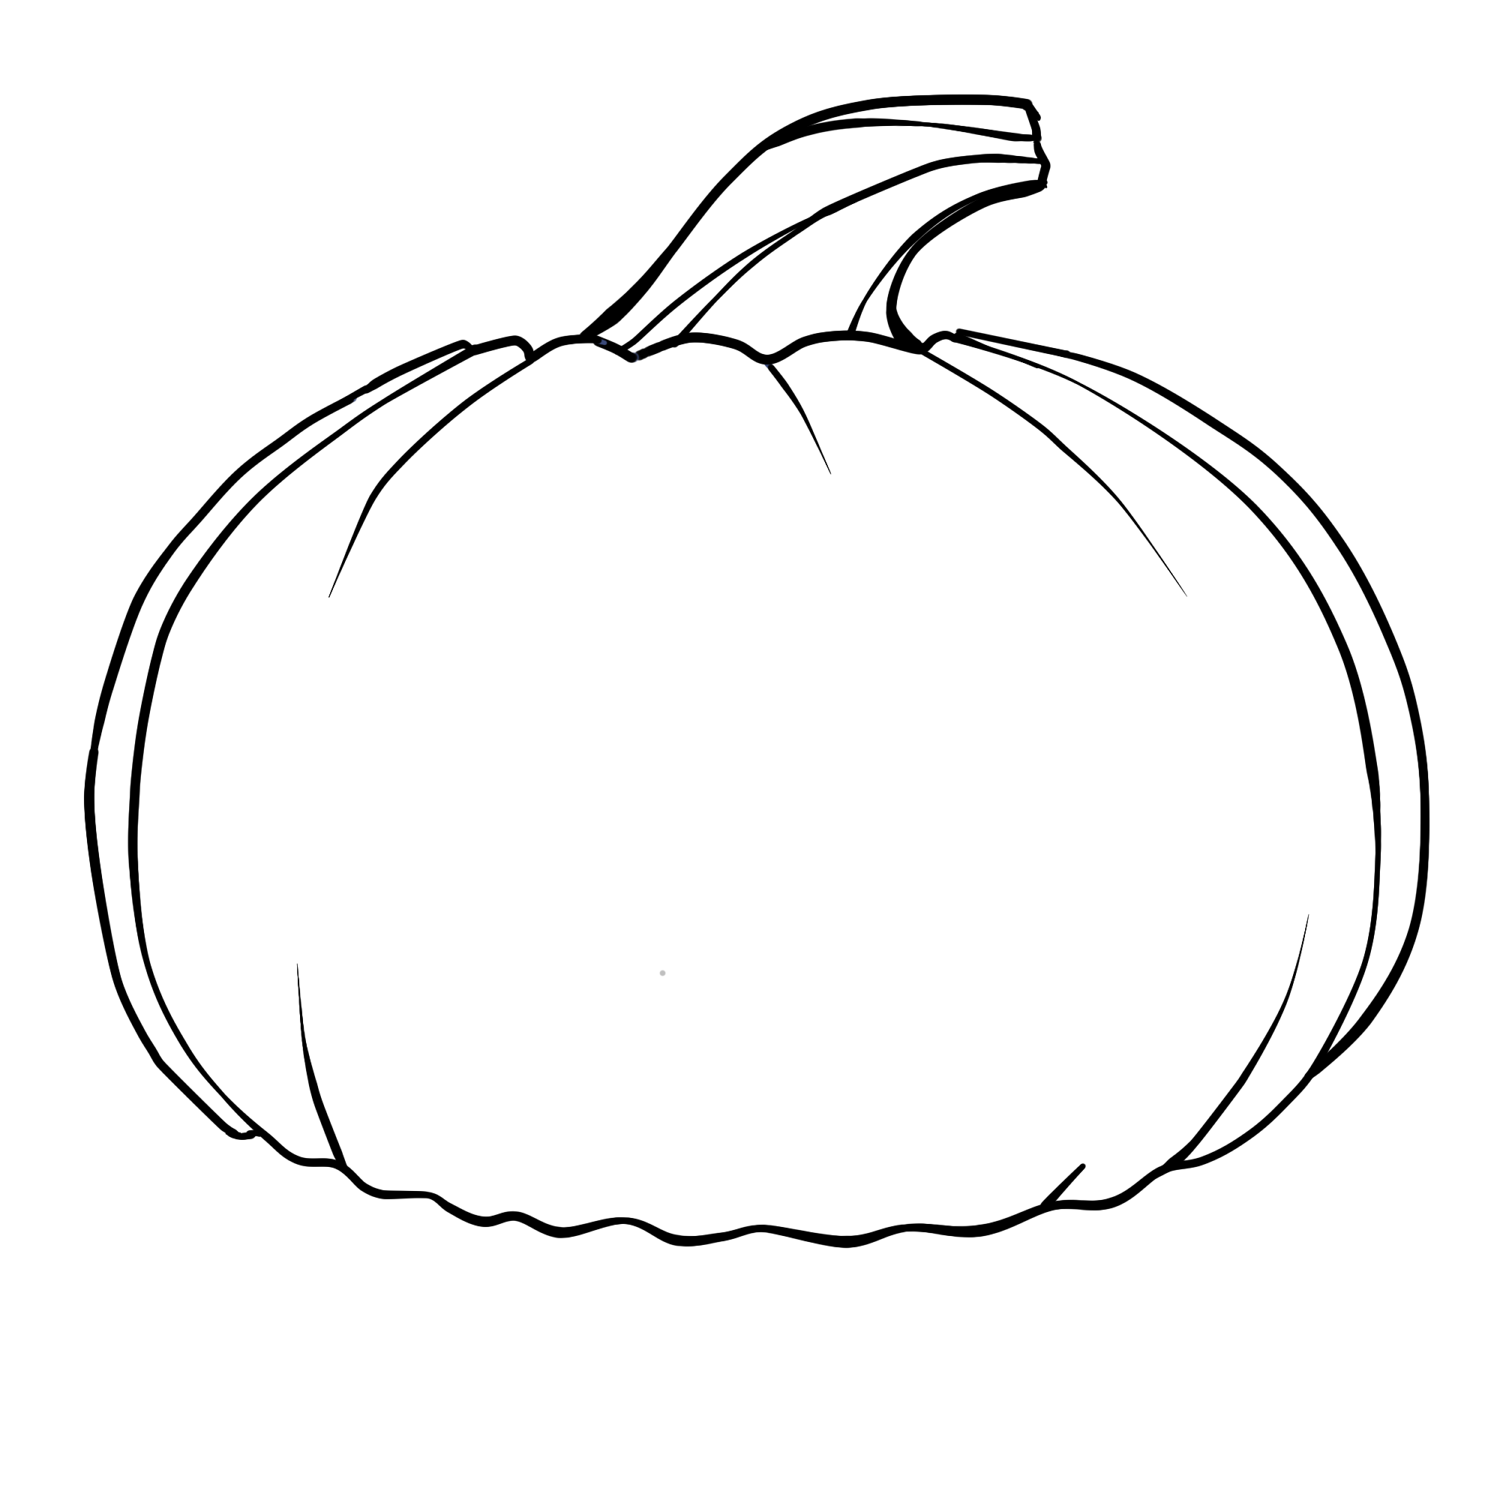 pumpkin coloring pages free printable 7 pics of pumpkin coloring pages templates blank pumpkin free pumpkin pages printable coloring